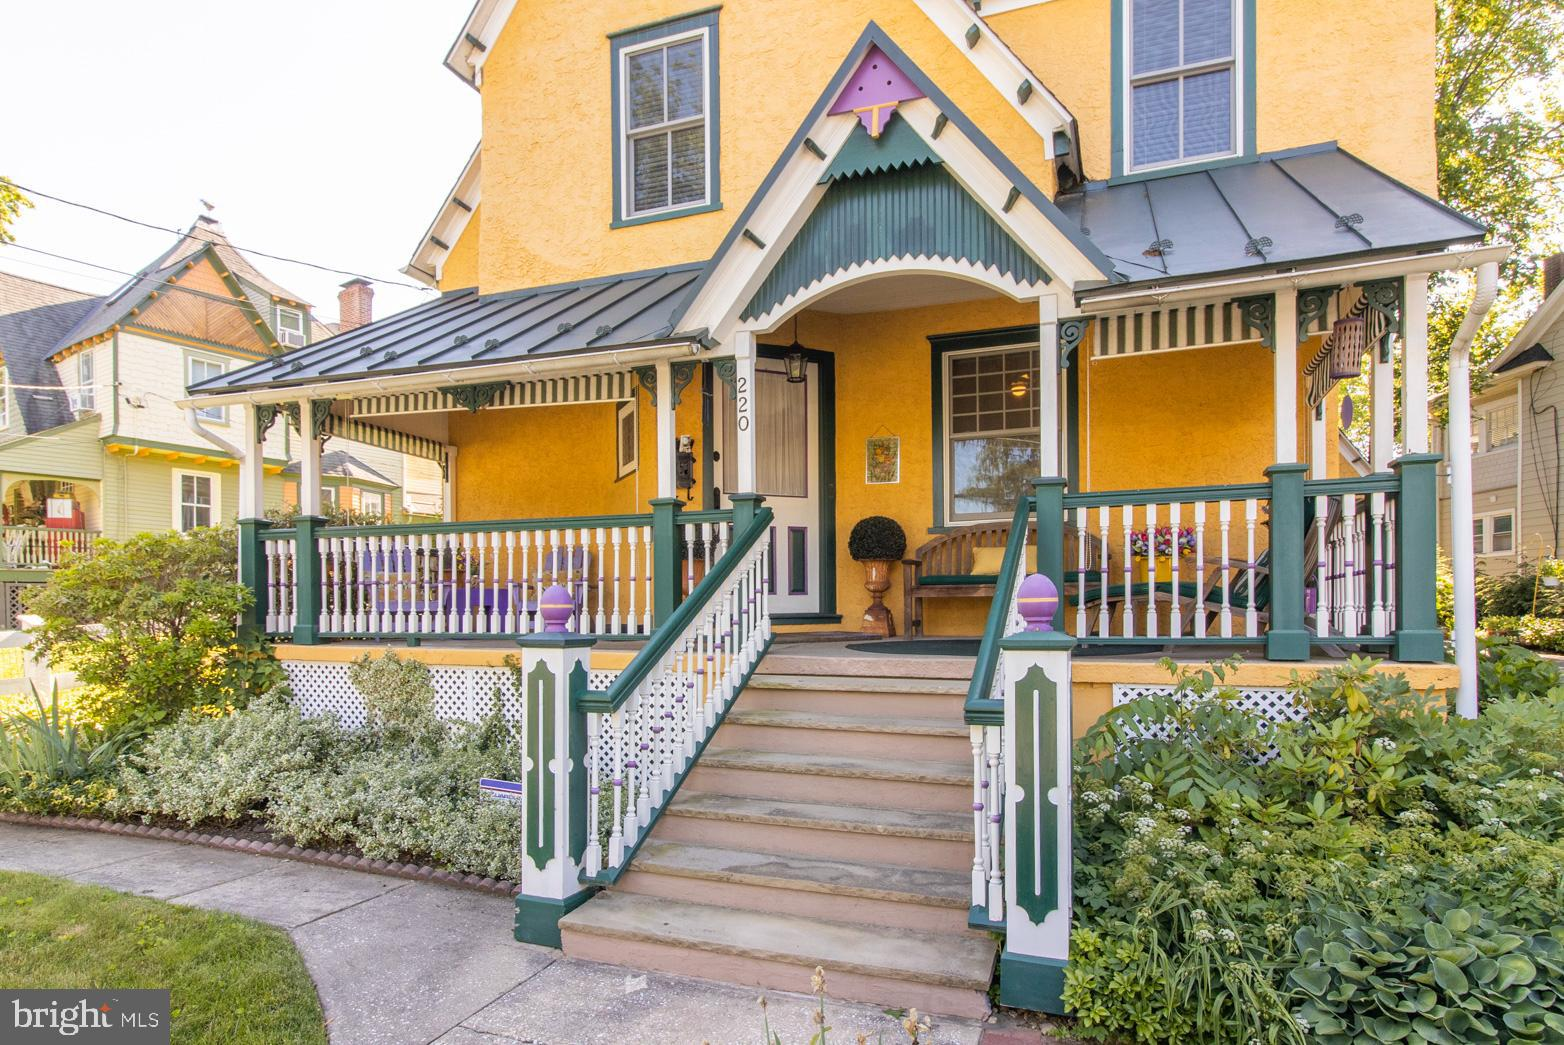 The convenience of city living in a beautiful suburban neighborhood! This spectacular Queen Anne Victorian home, in pristine condition, is a site to be seen.  A seamless blend of modern conveniences combined with historic character and architectural details.  The owner spared no expense when doing a full 2-year renovation of the entire house, all while keeping the intricate trims and vibrant colors of Victorian architecture.  The richly decorative and ornate features of the home include detailed millwork, beautiful diamond windows, wainscoting, crown moldings, and rafter tails.  This home, on fabulous Bloomingdale Avenue, has it all!  Enter the home by way of the grand sandstone staircase and step inside to appreciate the respect that was given to the history of the home.  The vestibule opens to an inviting foyer with a rebuilt, turned staircase and refinished hardwood floors, which extend throughout the home.  The living room flows into a fireside library with large windows for natural light and a gorgeous built-in bookcase.  The charming kitchen with checkerboard backsplash and built-ins has been updated with crisp white cabinetry, stainless steel appliances and quartz countertops.  Continue on to the elegant dining room featuring French doors that open to the tranquil backyard with a backdrop of the renovated, oversized garage, manicured lawns and beautiful planting beds.  A perfect place to entertain family and friends for a summer cookout.  The first floor rounds out with a renovated laundry room and full bathroom. The second floor includes a spacious master suite with a sitting area, tons of closet space and an ensuite bath.  Relax in the clawfoot tub while enjoying the abundance of natural light coming through the elegant diamond window.  The master bathroom also features double sinks and a separate room with a stall shower.  There are two more generously sized bedrooms and another full bath completing the second floor.  Head upstairs to the 4th bedroom, on i